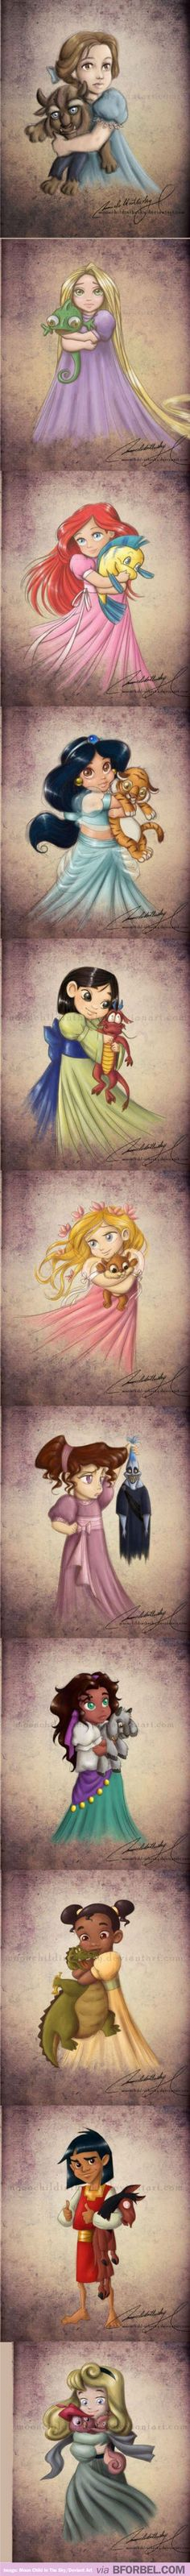 Baby Disney Princesses Holding Stuffed Animals Of Their Supporting Characters…